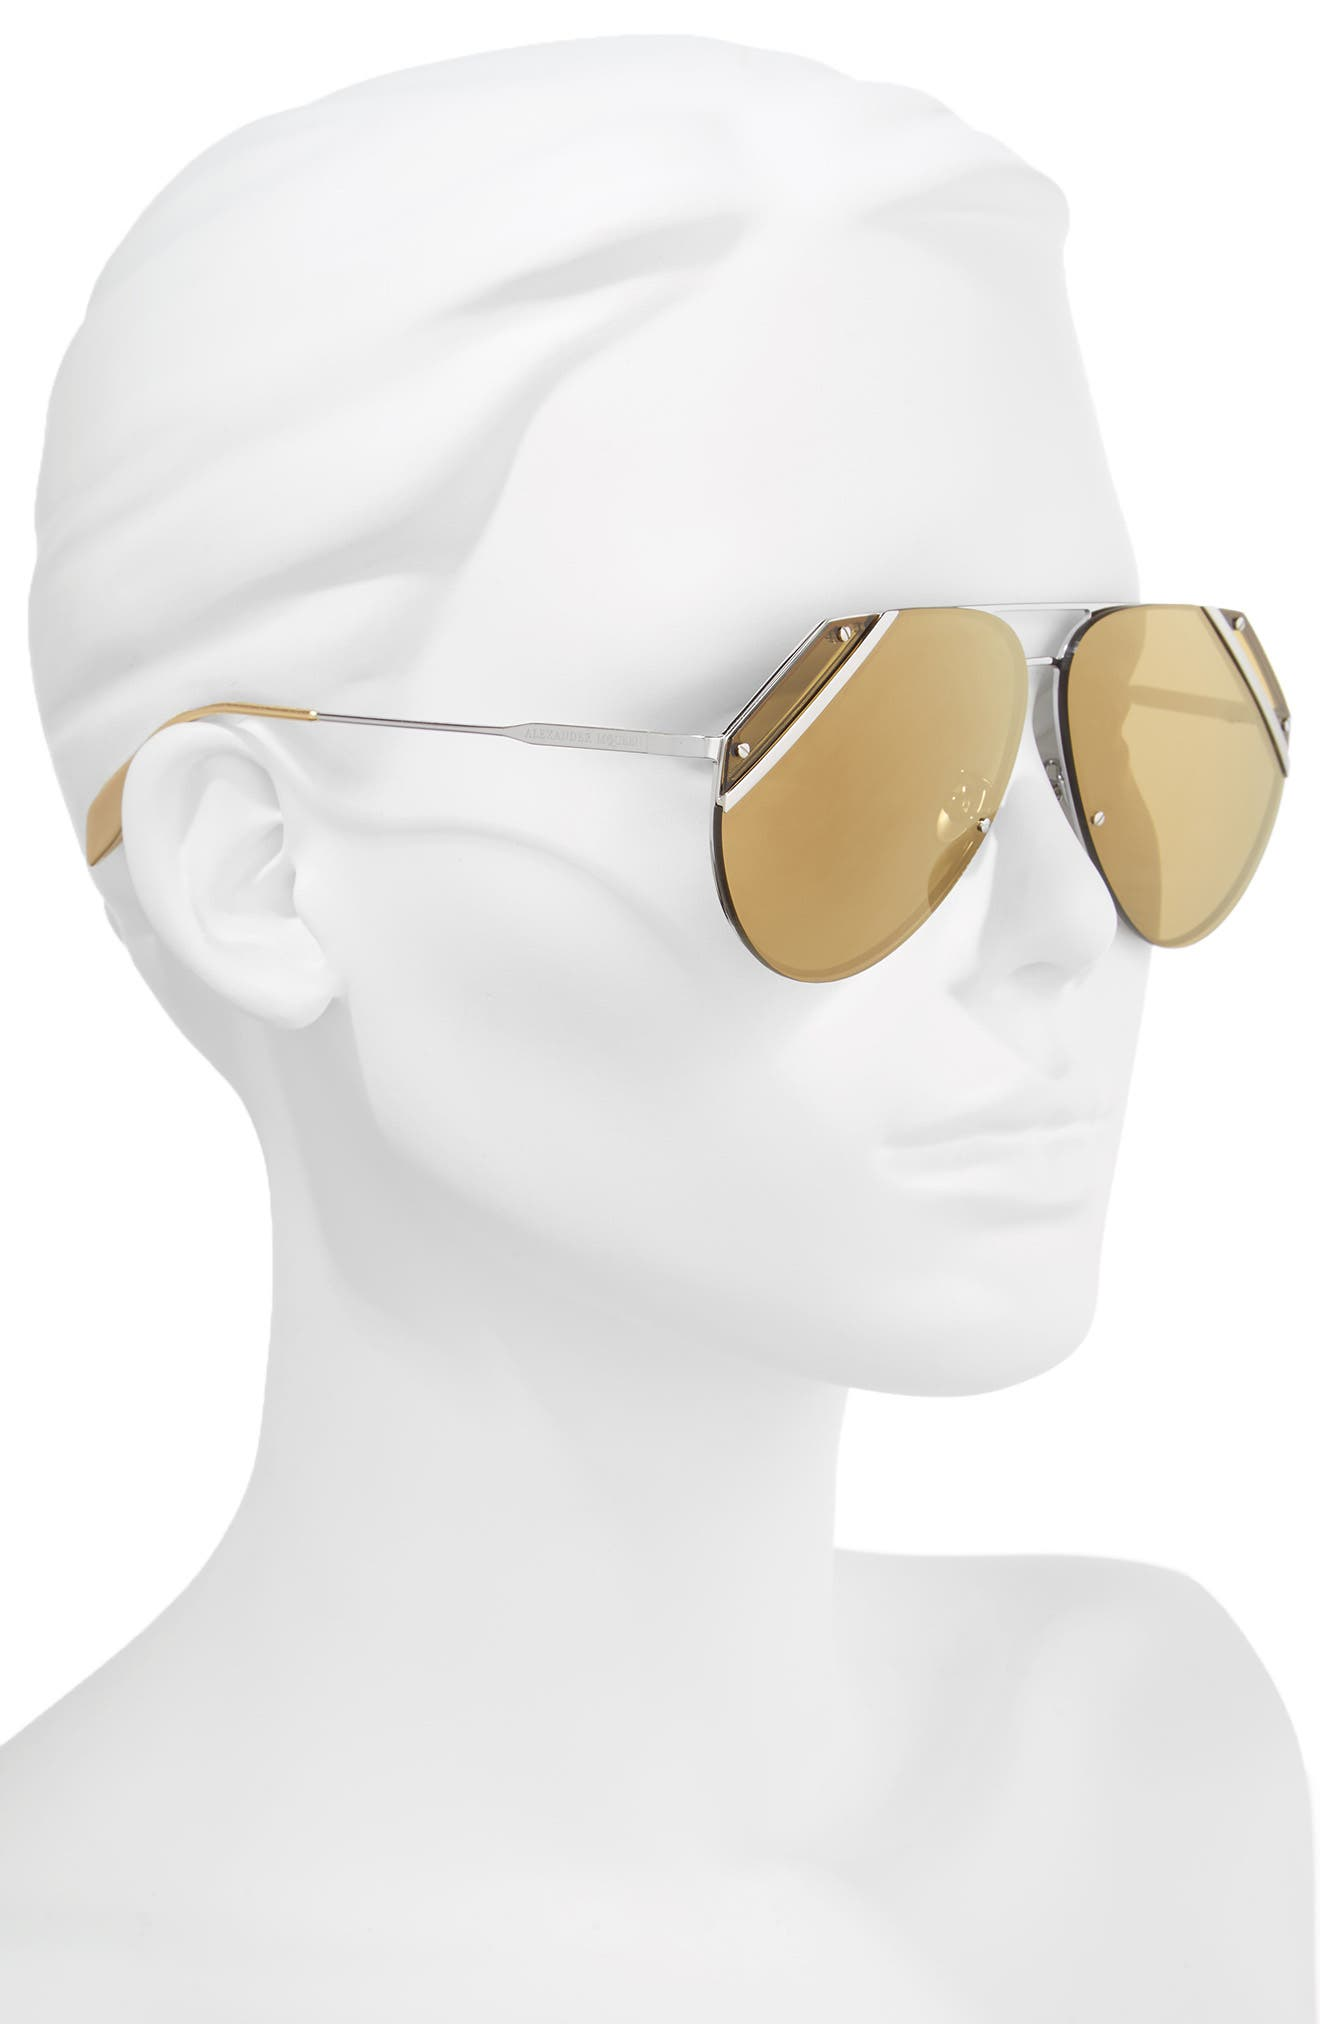 65mm Snip Frame Aviator Sunglasses,                             Alternate thumbnail 2, color,                             040